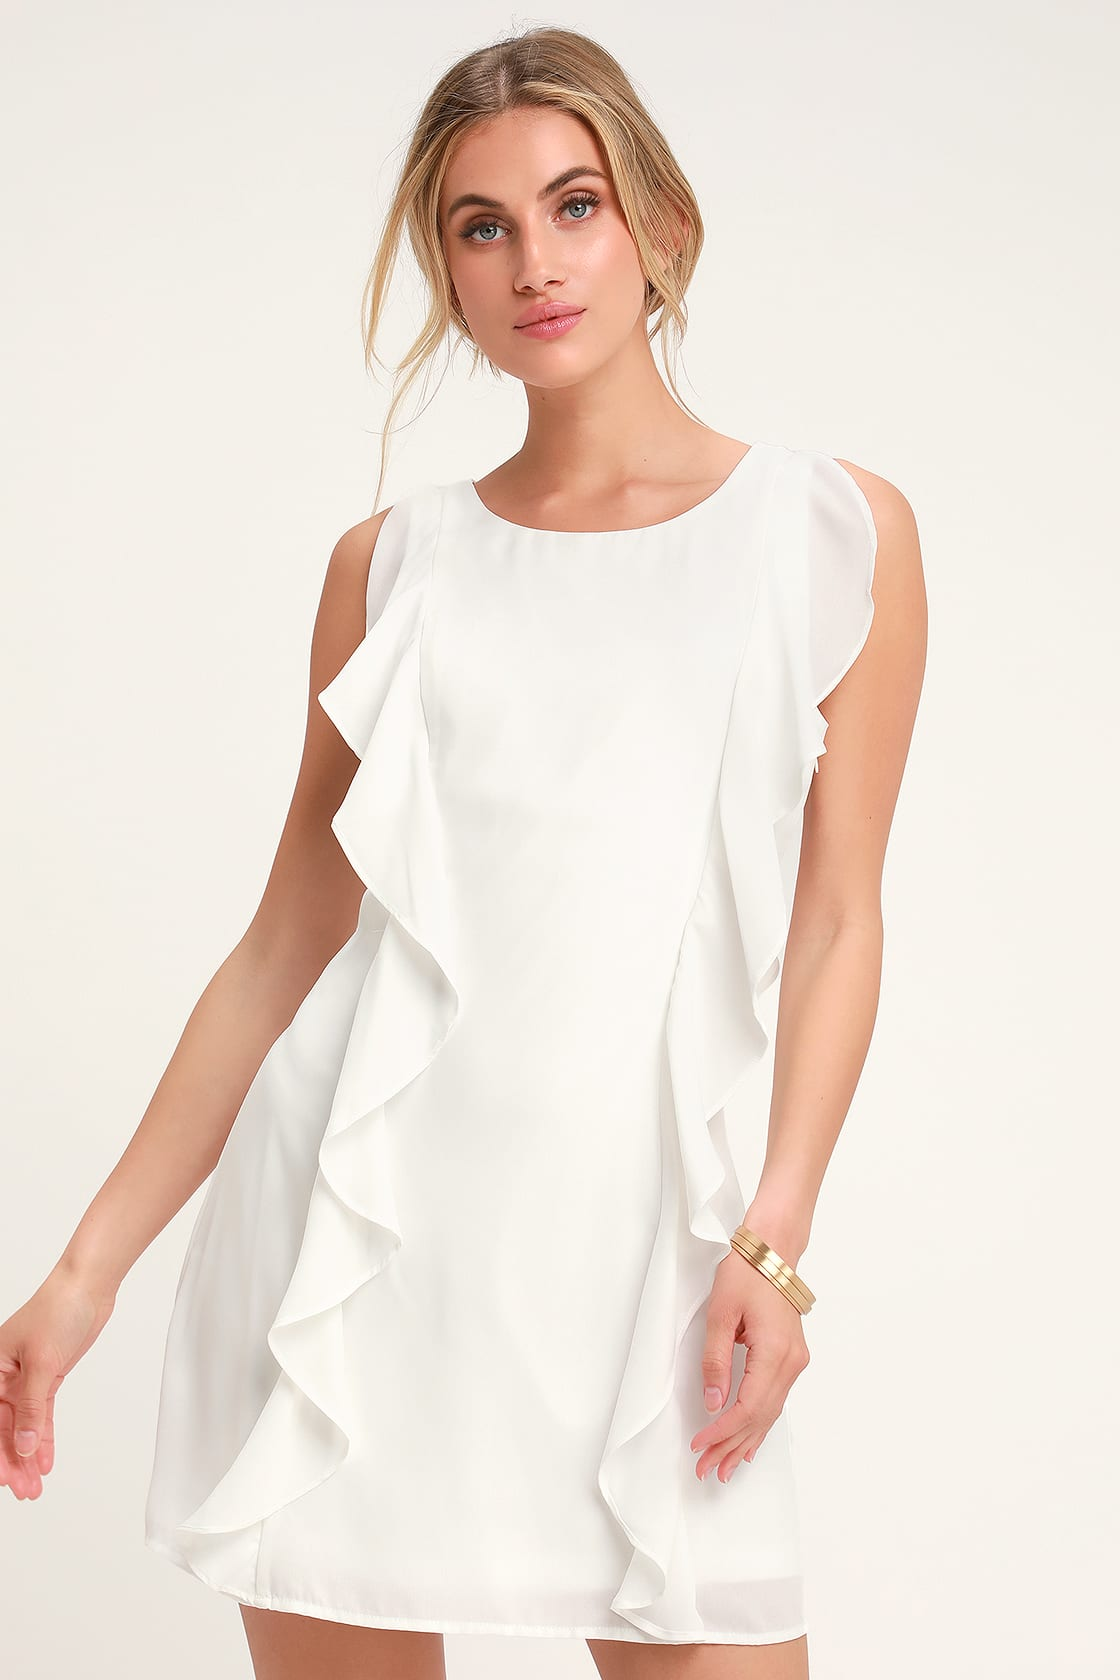 Audree White Ruffled Sleeveless Dress